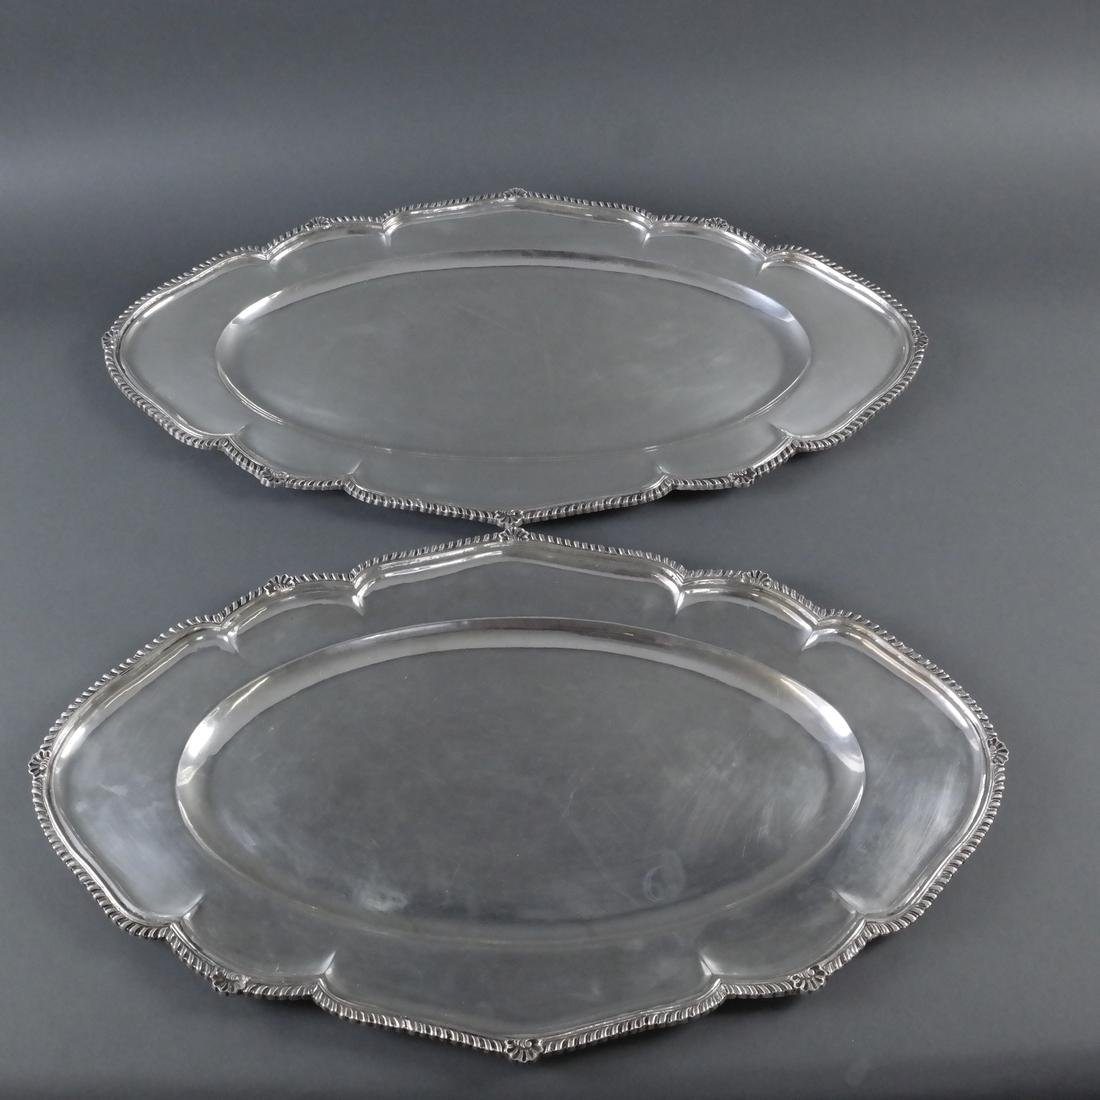 Two .900 Standard Silver Trays